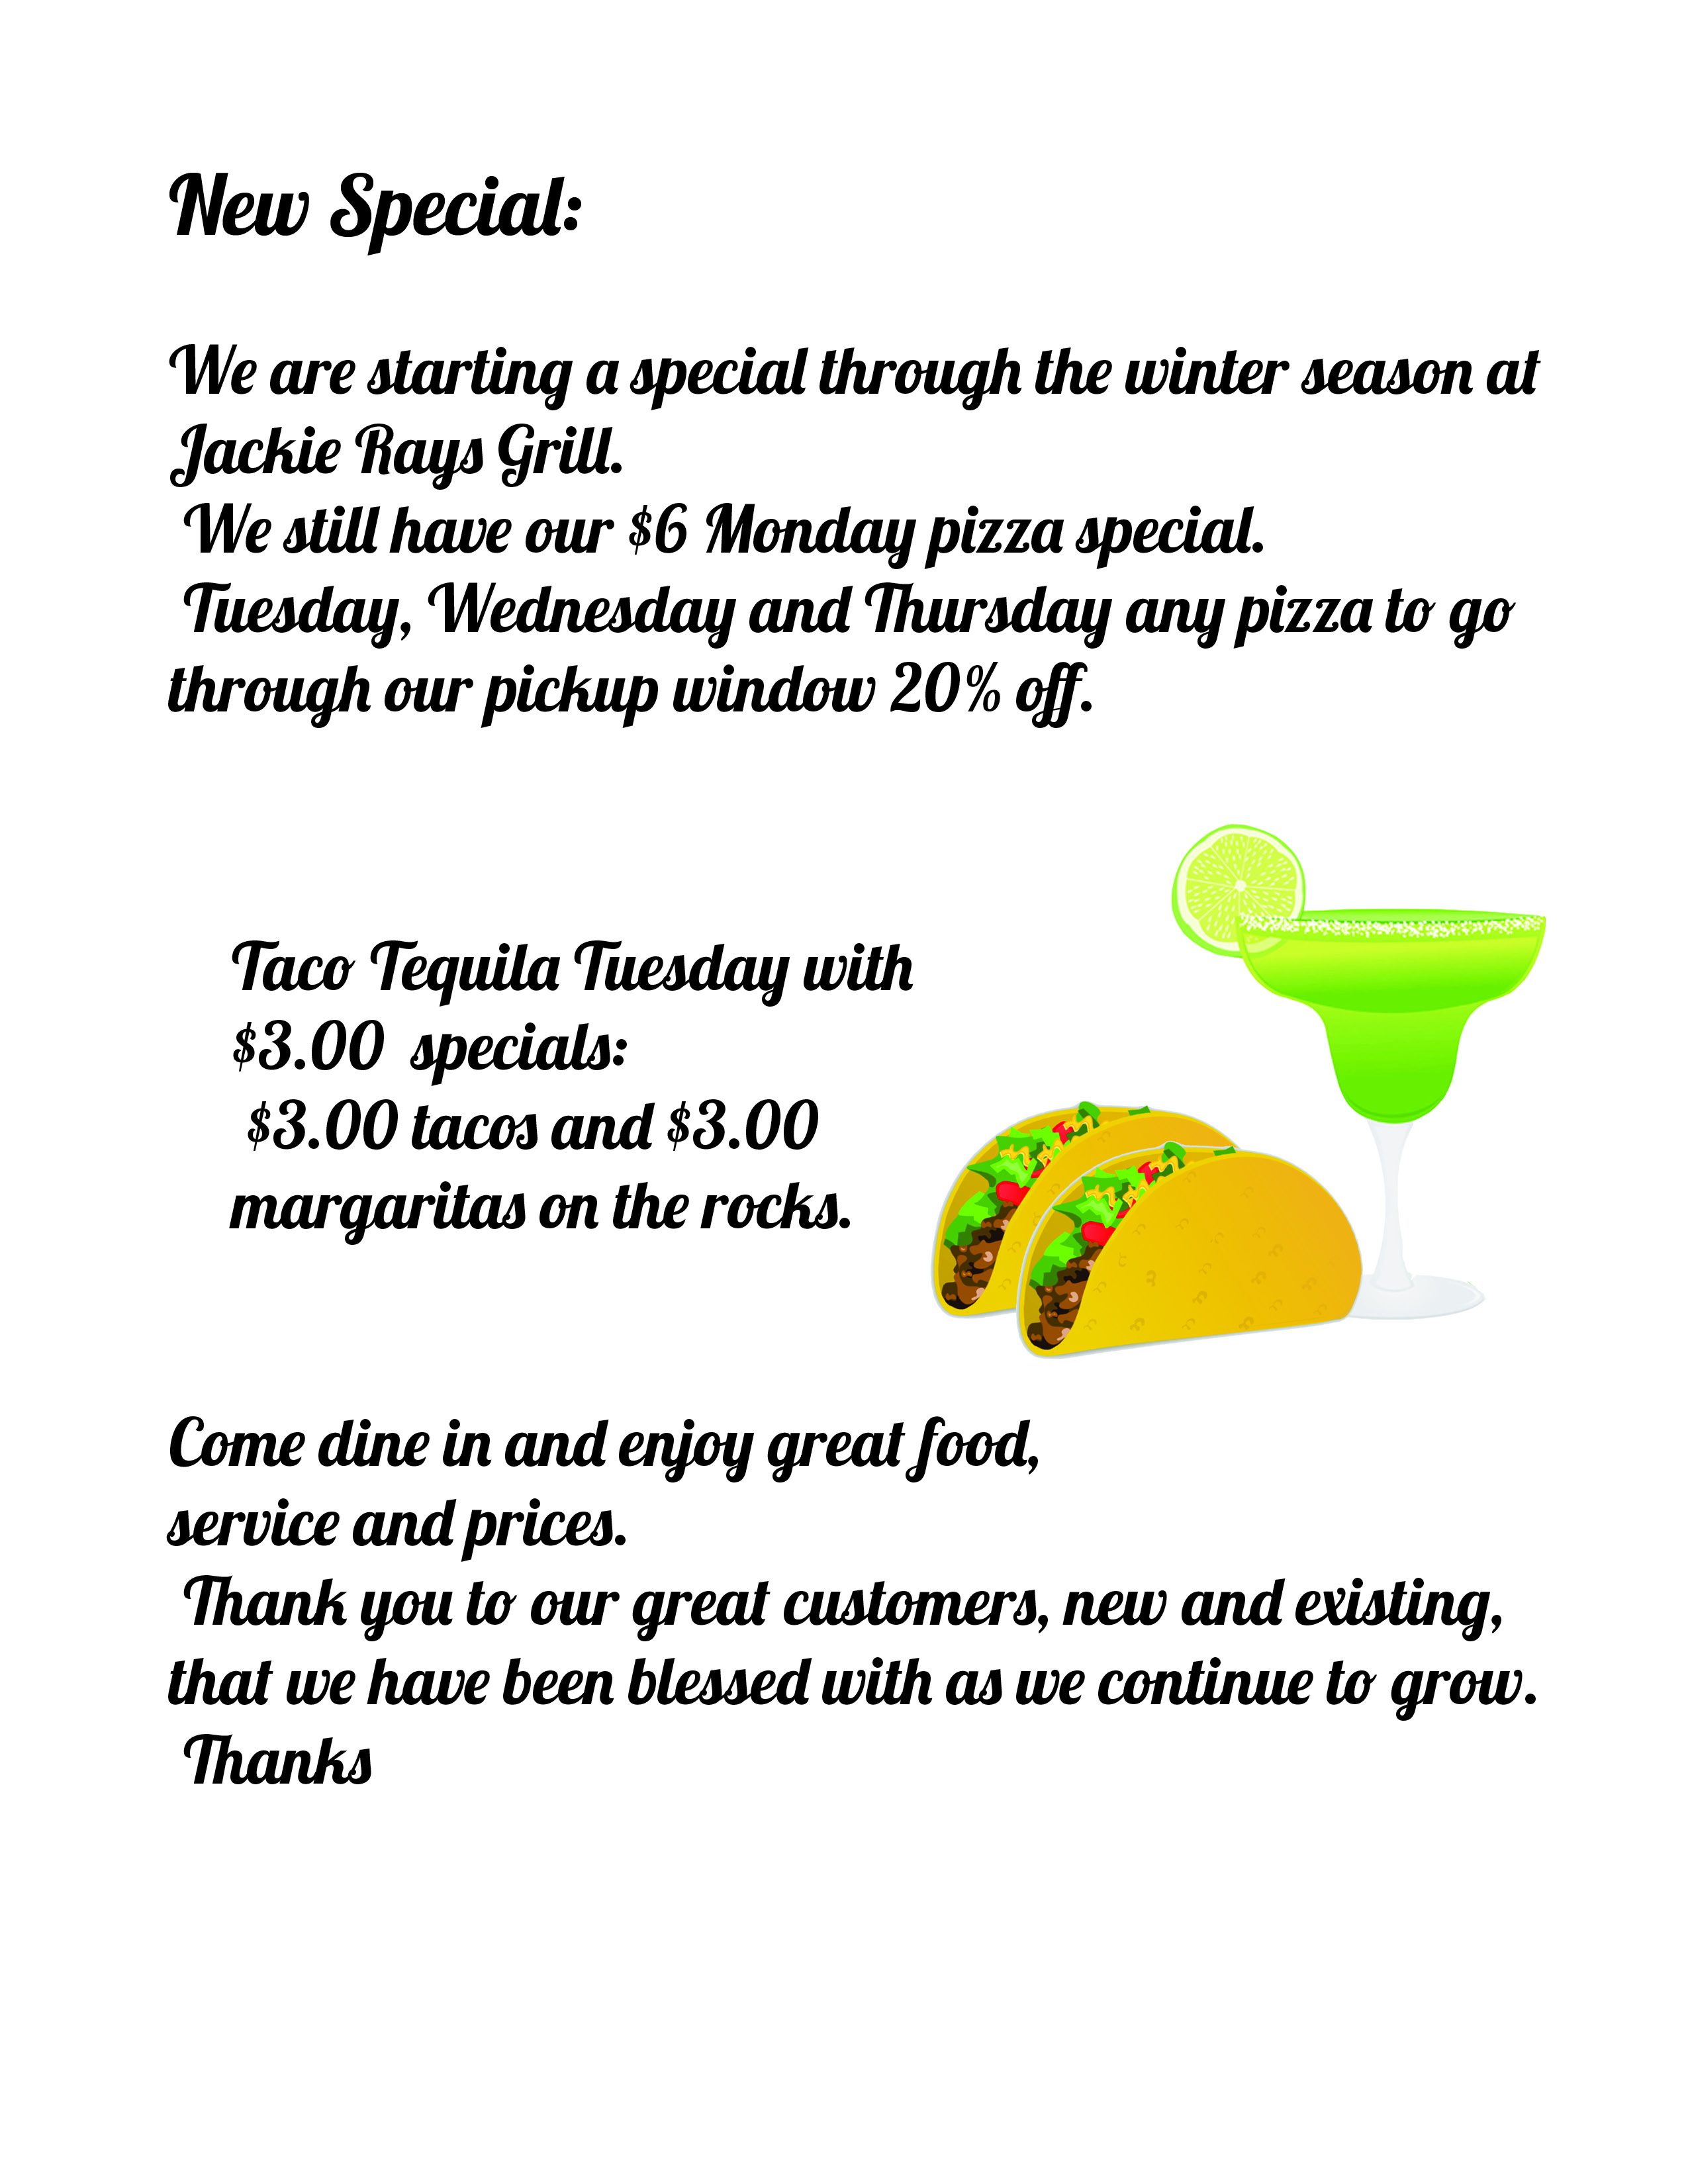 specials page with margarita and taco